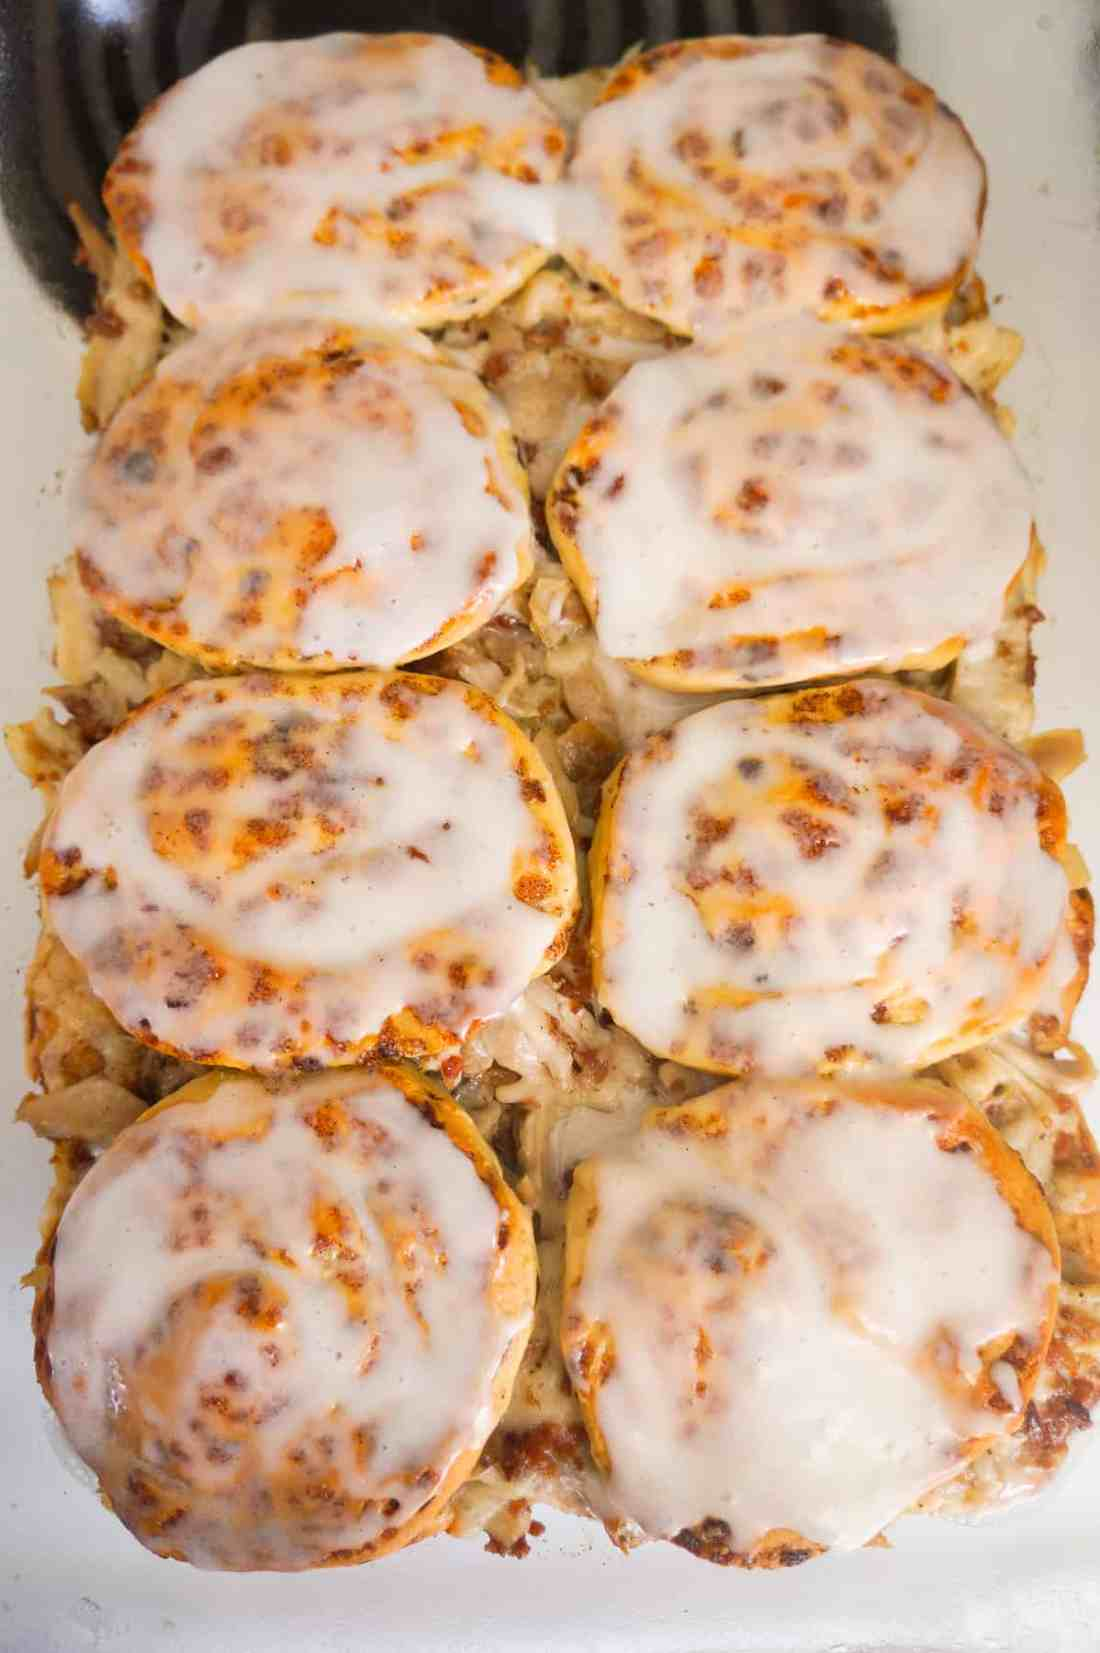 cinnamon roll breakfast casserole with icing